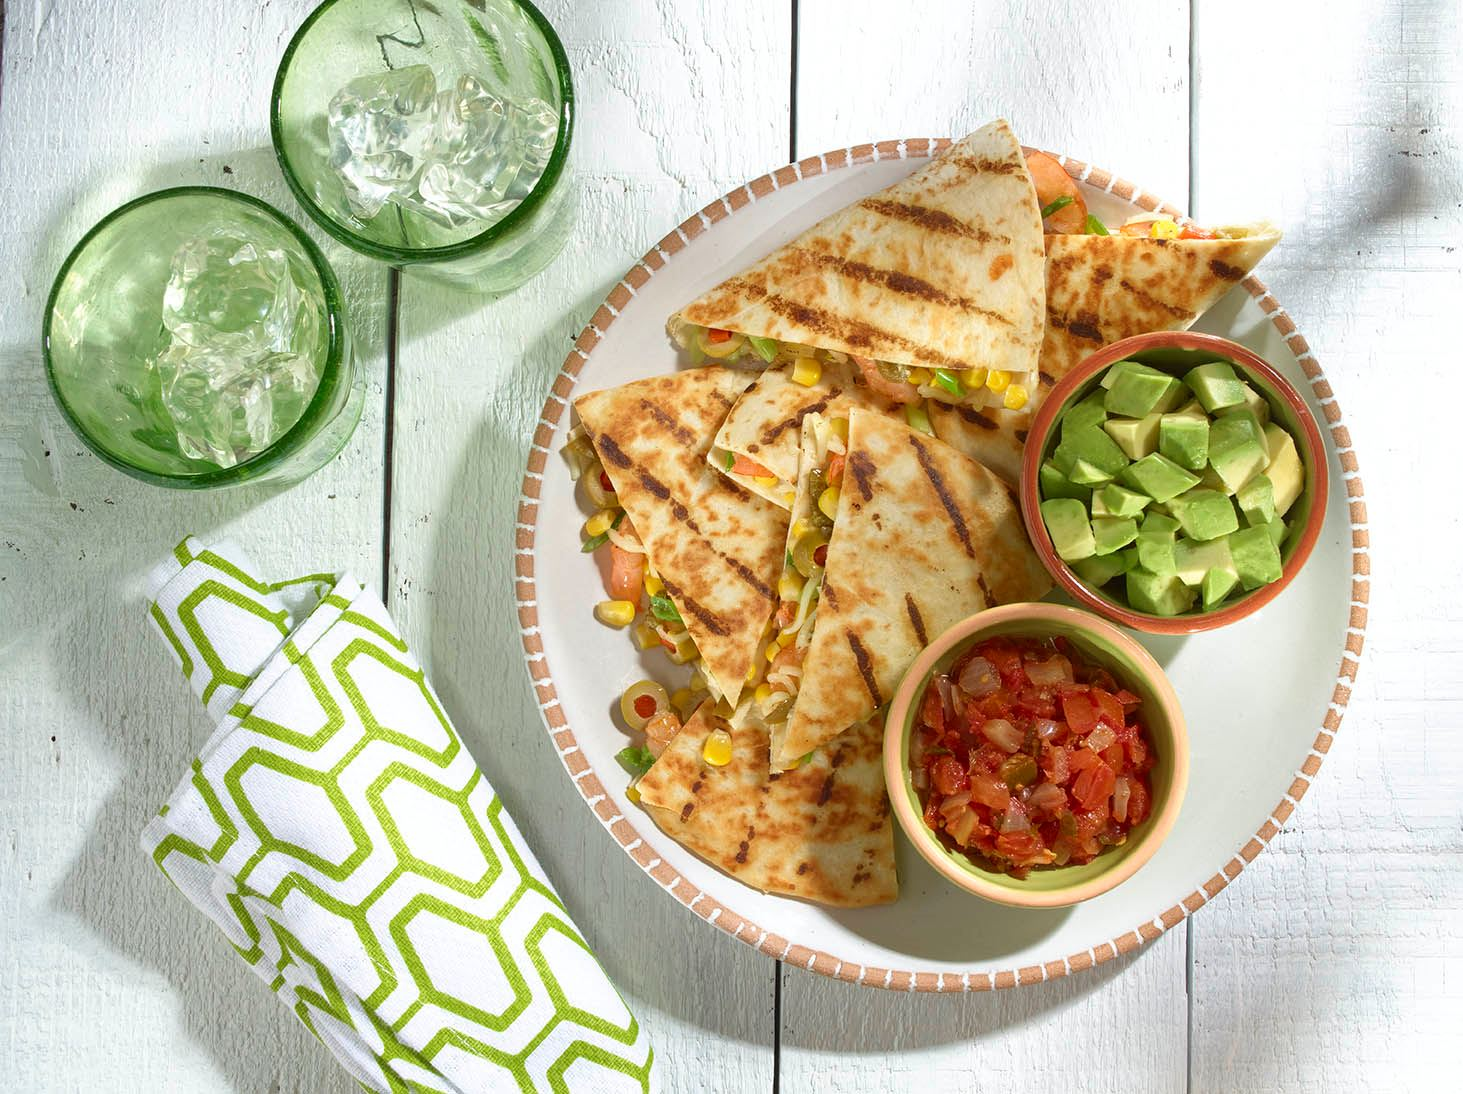 Spicy Shrimp and Corn Quesadillas